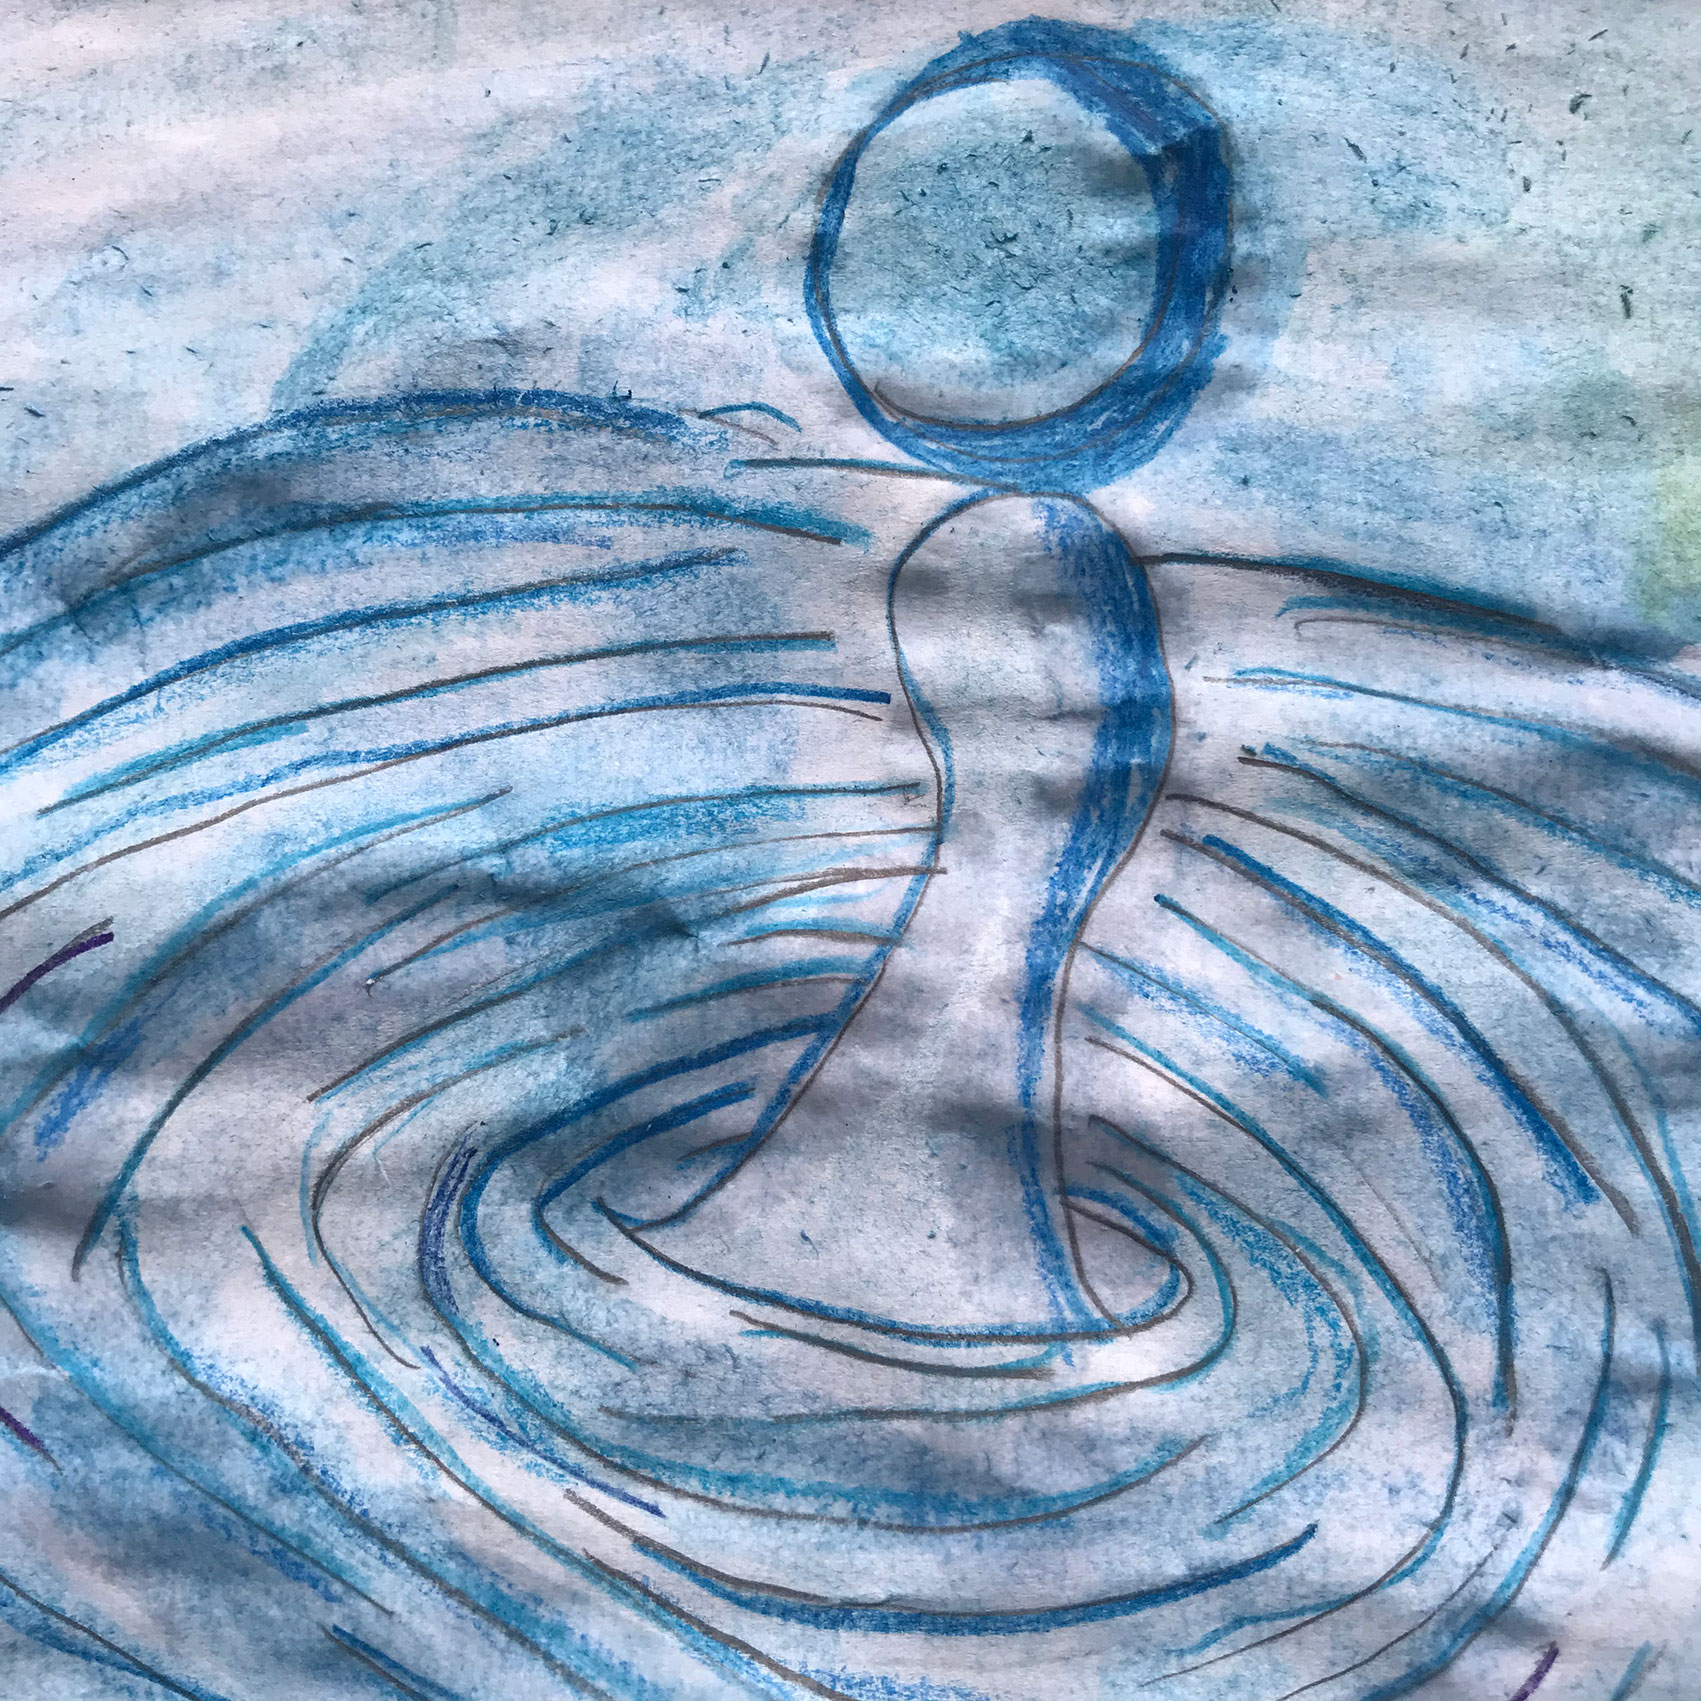 Child's painting of ripples in water